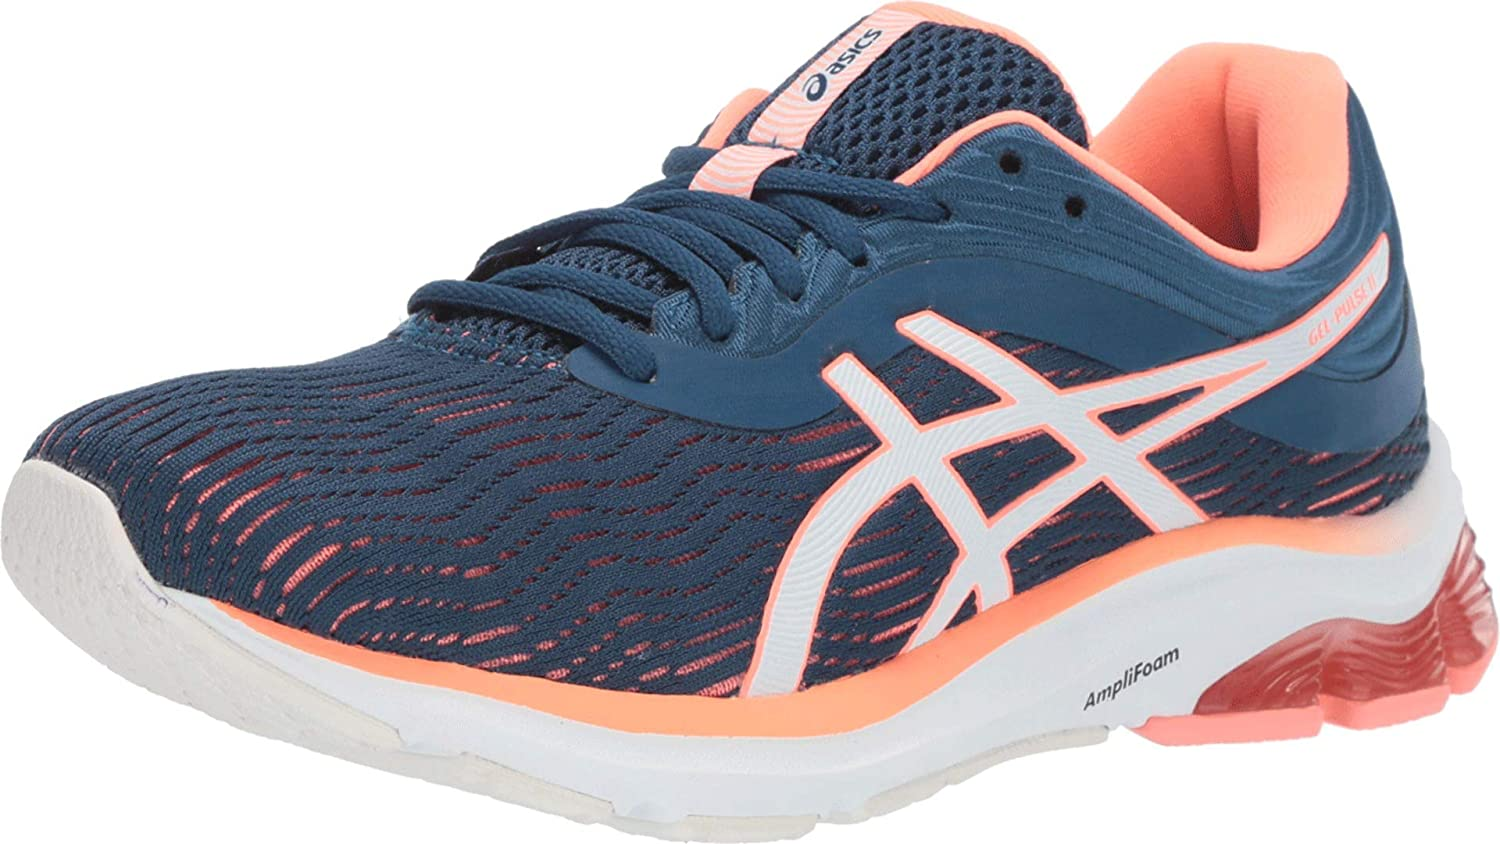 Entrada pavimento Nacarado  Amazon.com | ASICS Women's Gel-Pulse 11 Running Shoes | Road Running